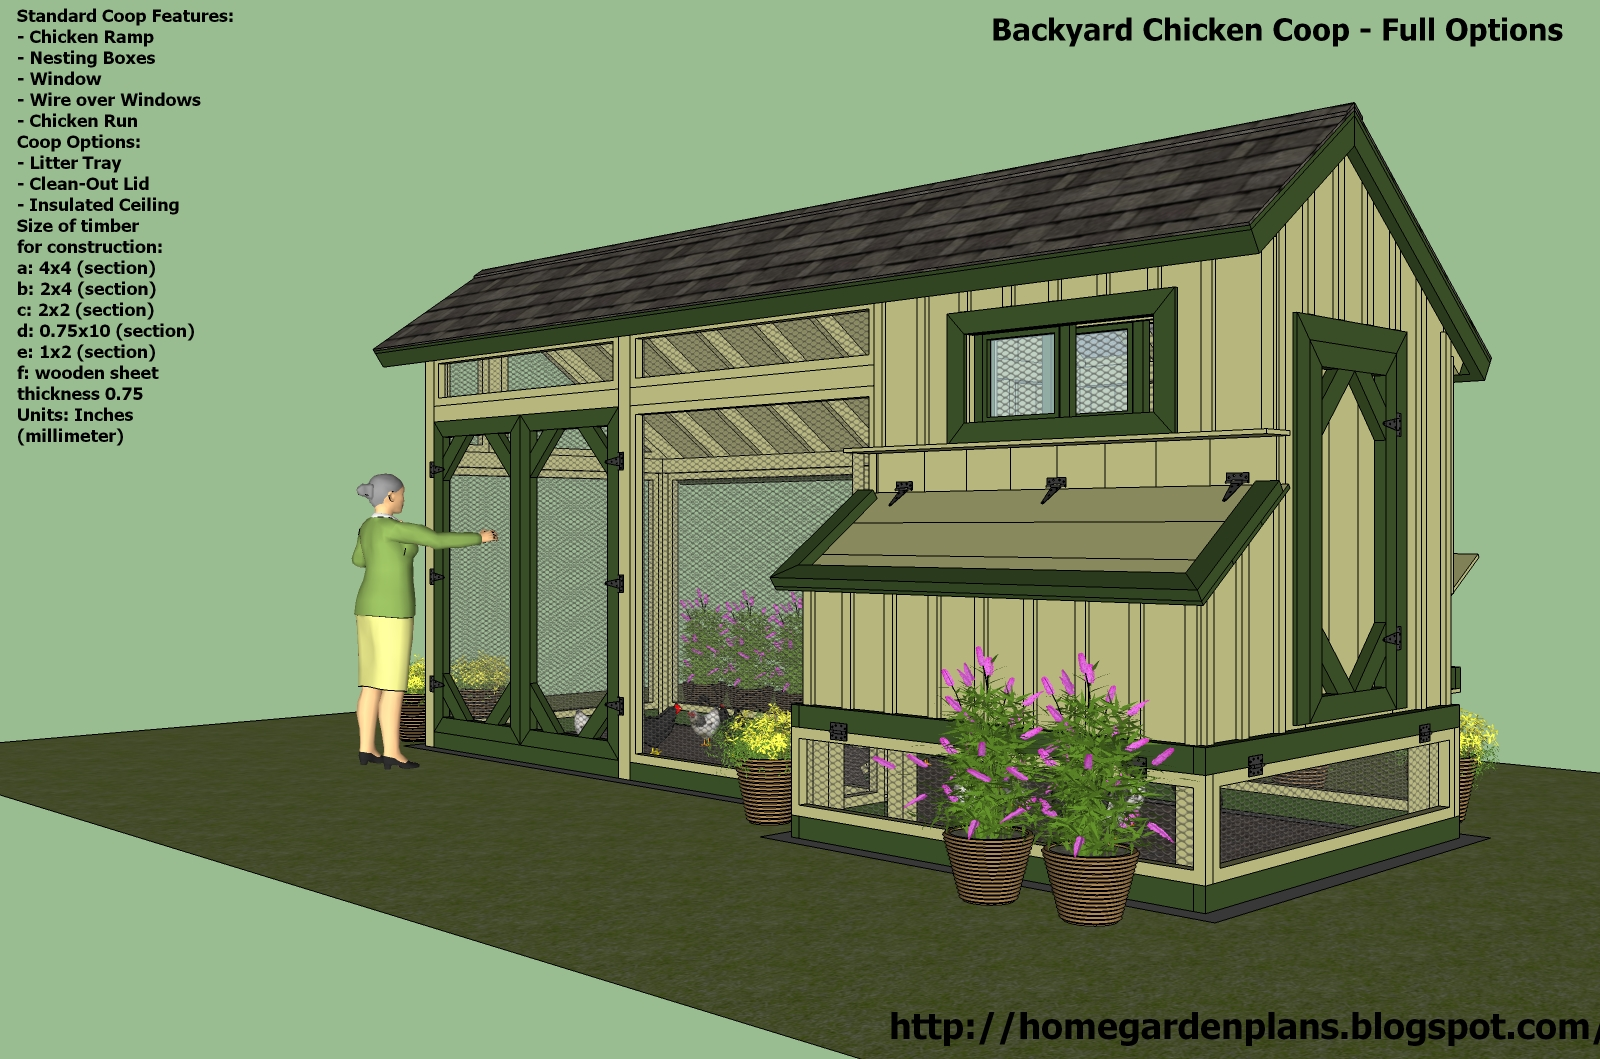 Hen 39 s detailed chicken coop plans for Poultry house plans for 100 chickens